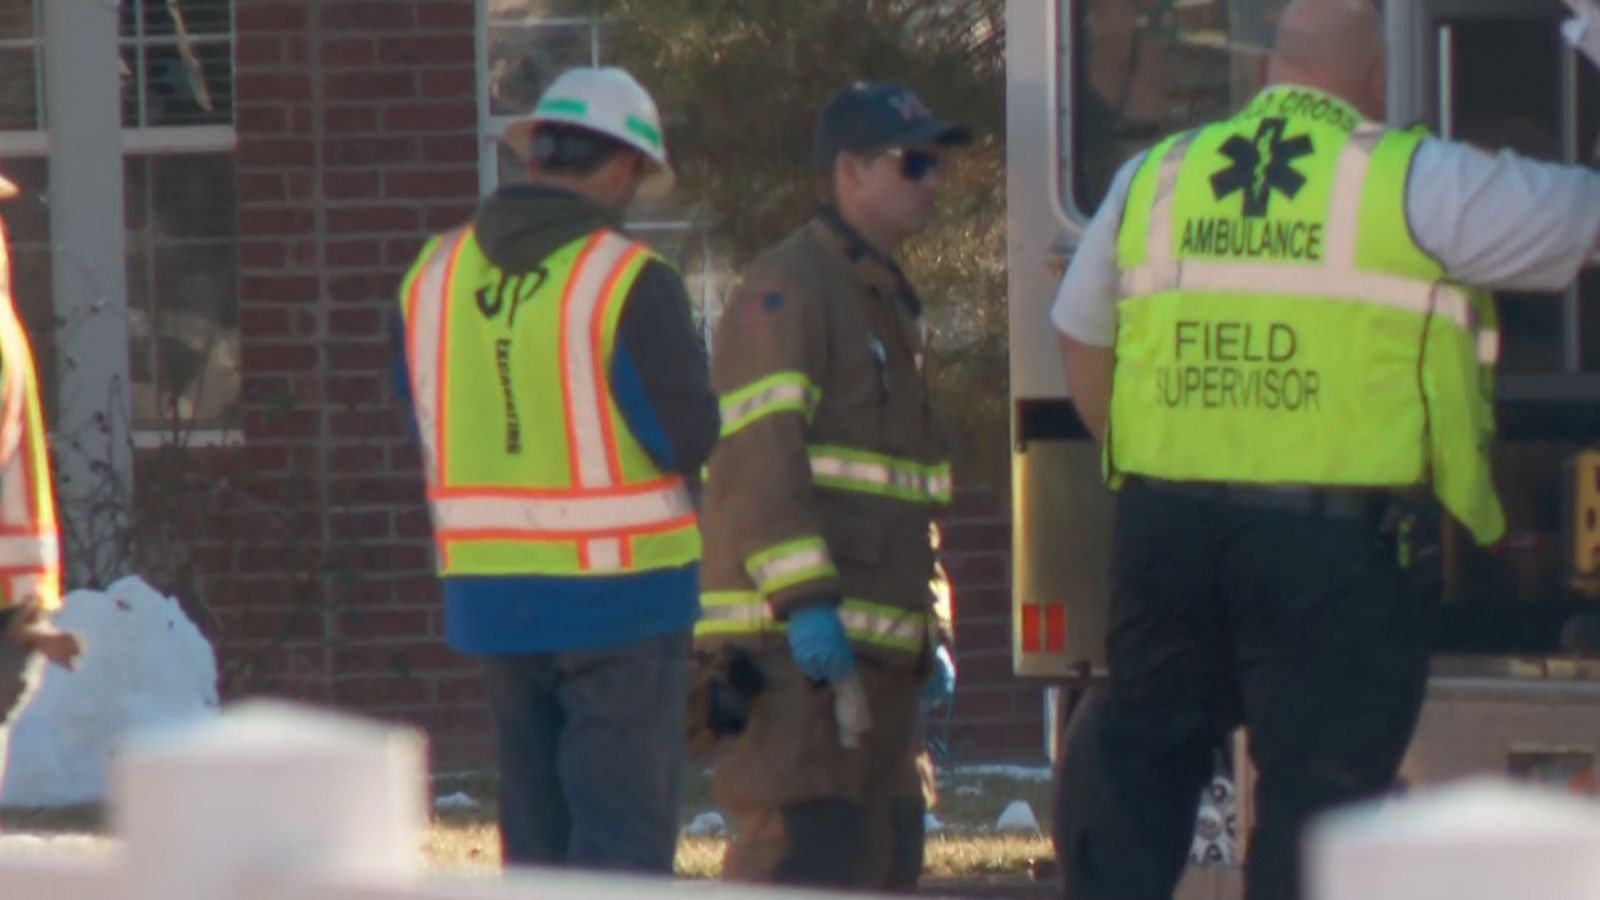 First responders pulled a man from the site of an industrial accident in St. George Monday afternoon. (Photo: Ben Pollchik / KUTV)